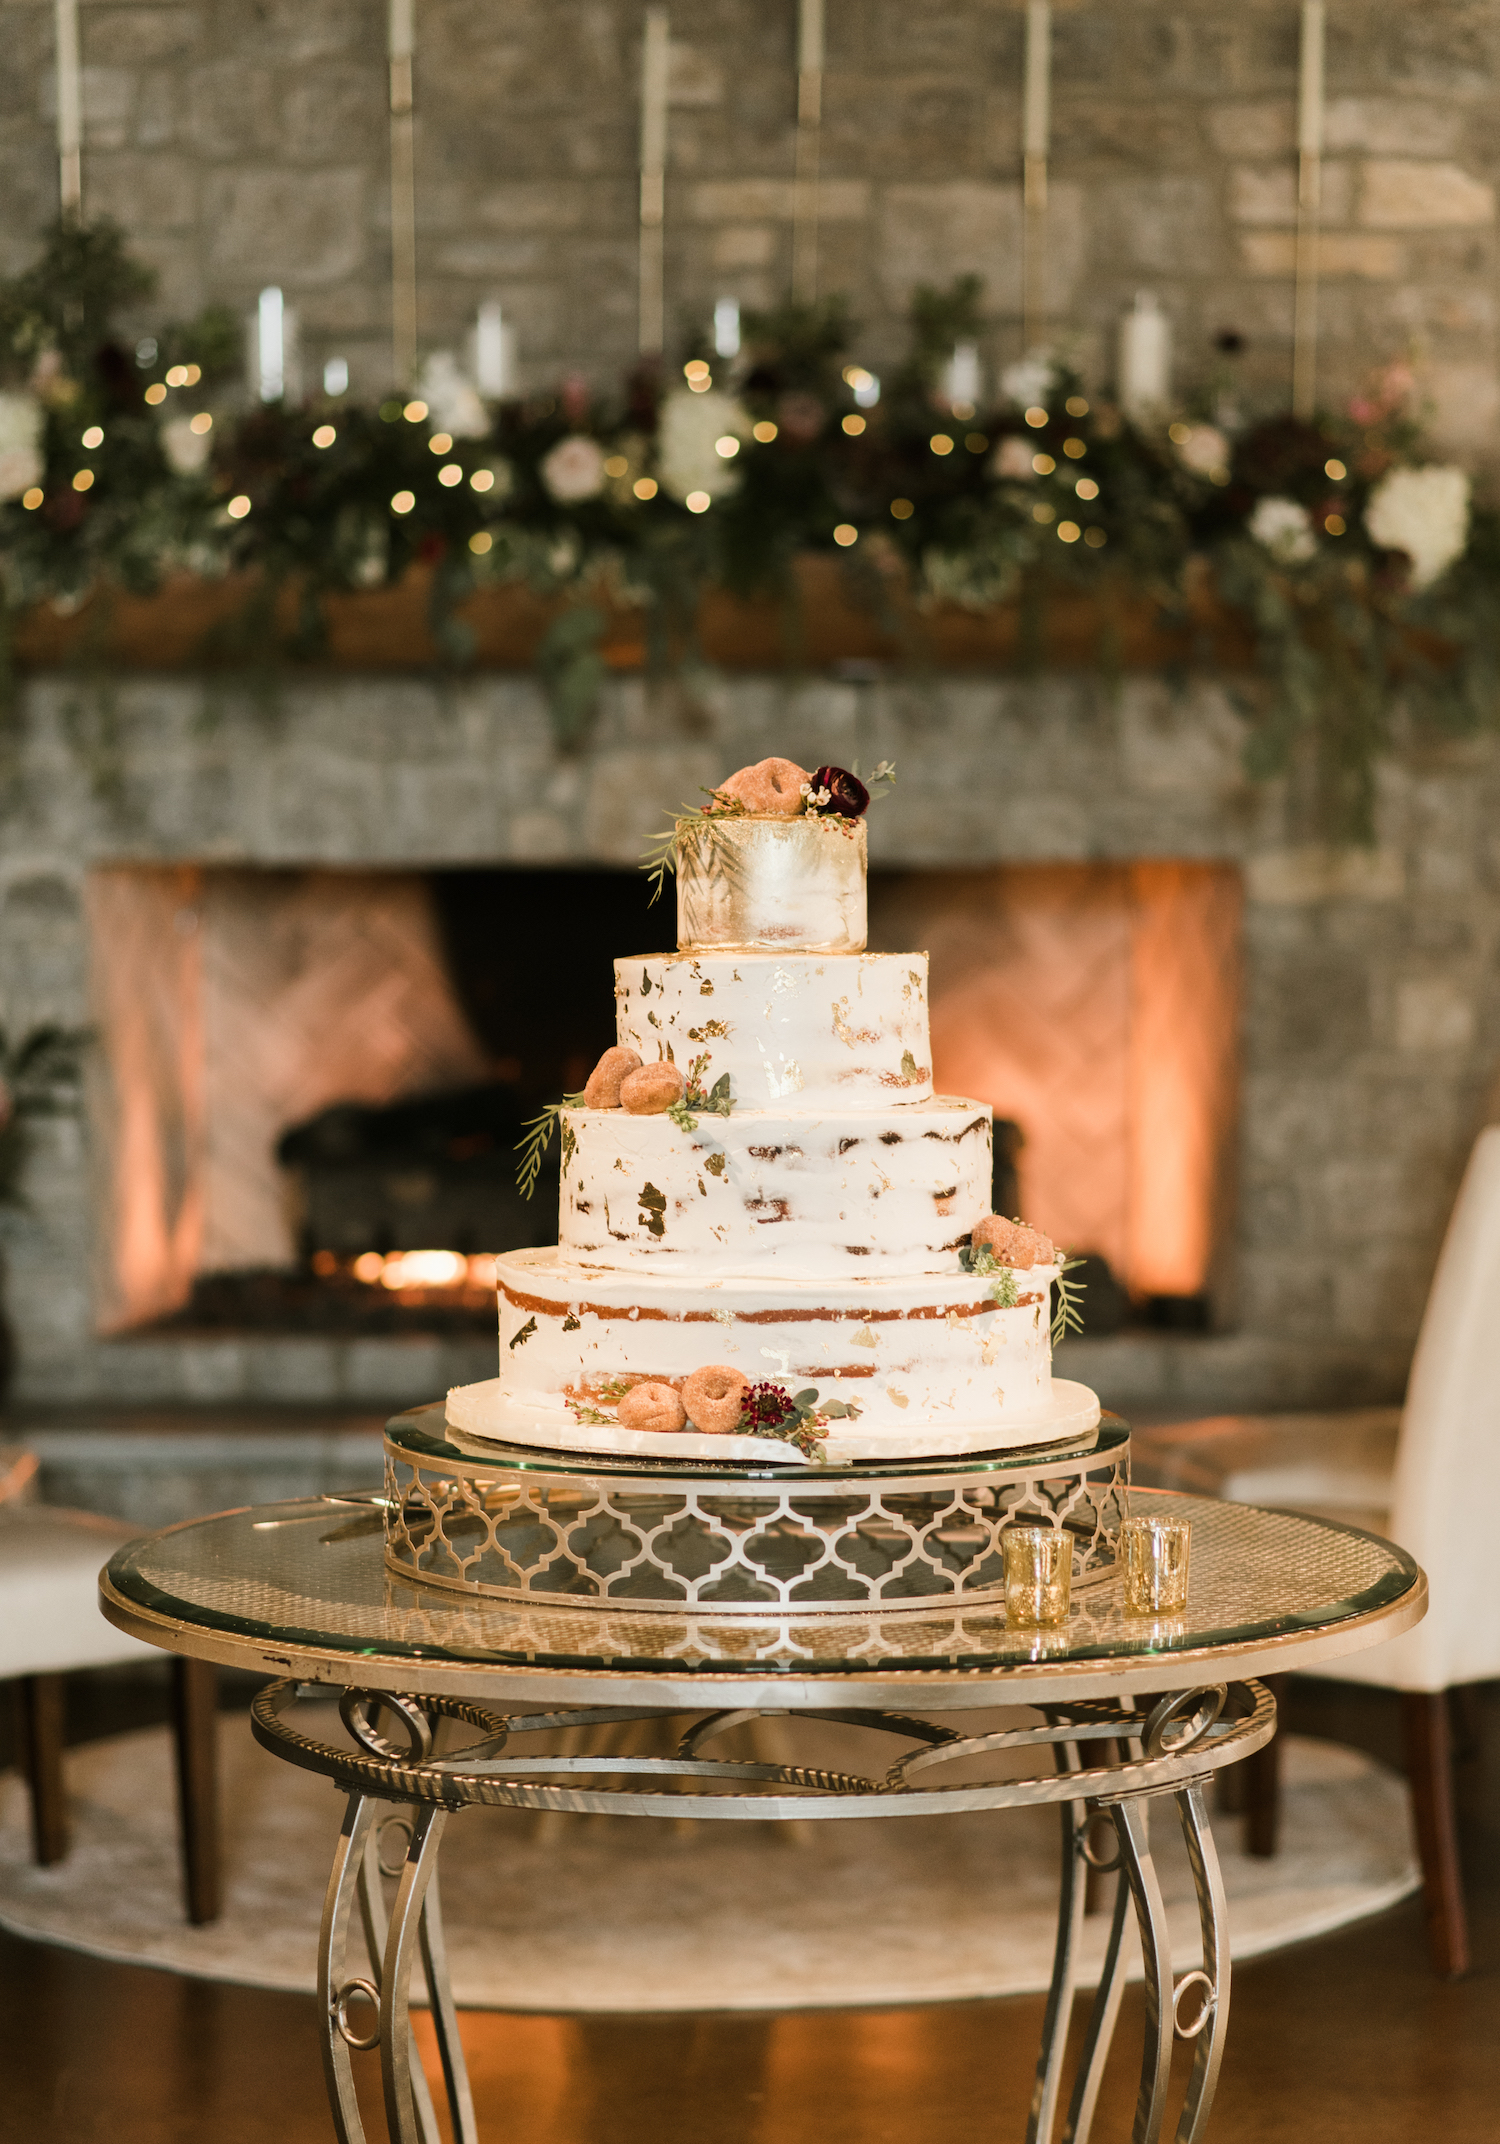 Wedding Cake Design: Upscale Marble Graystone Quarry Wedding featured on Nashville Bride Guide by Shelby Rae Photographs